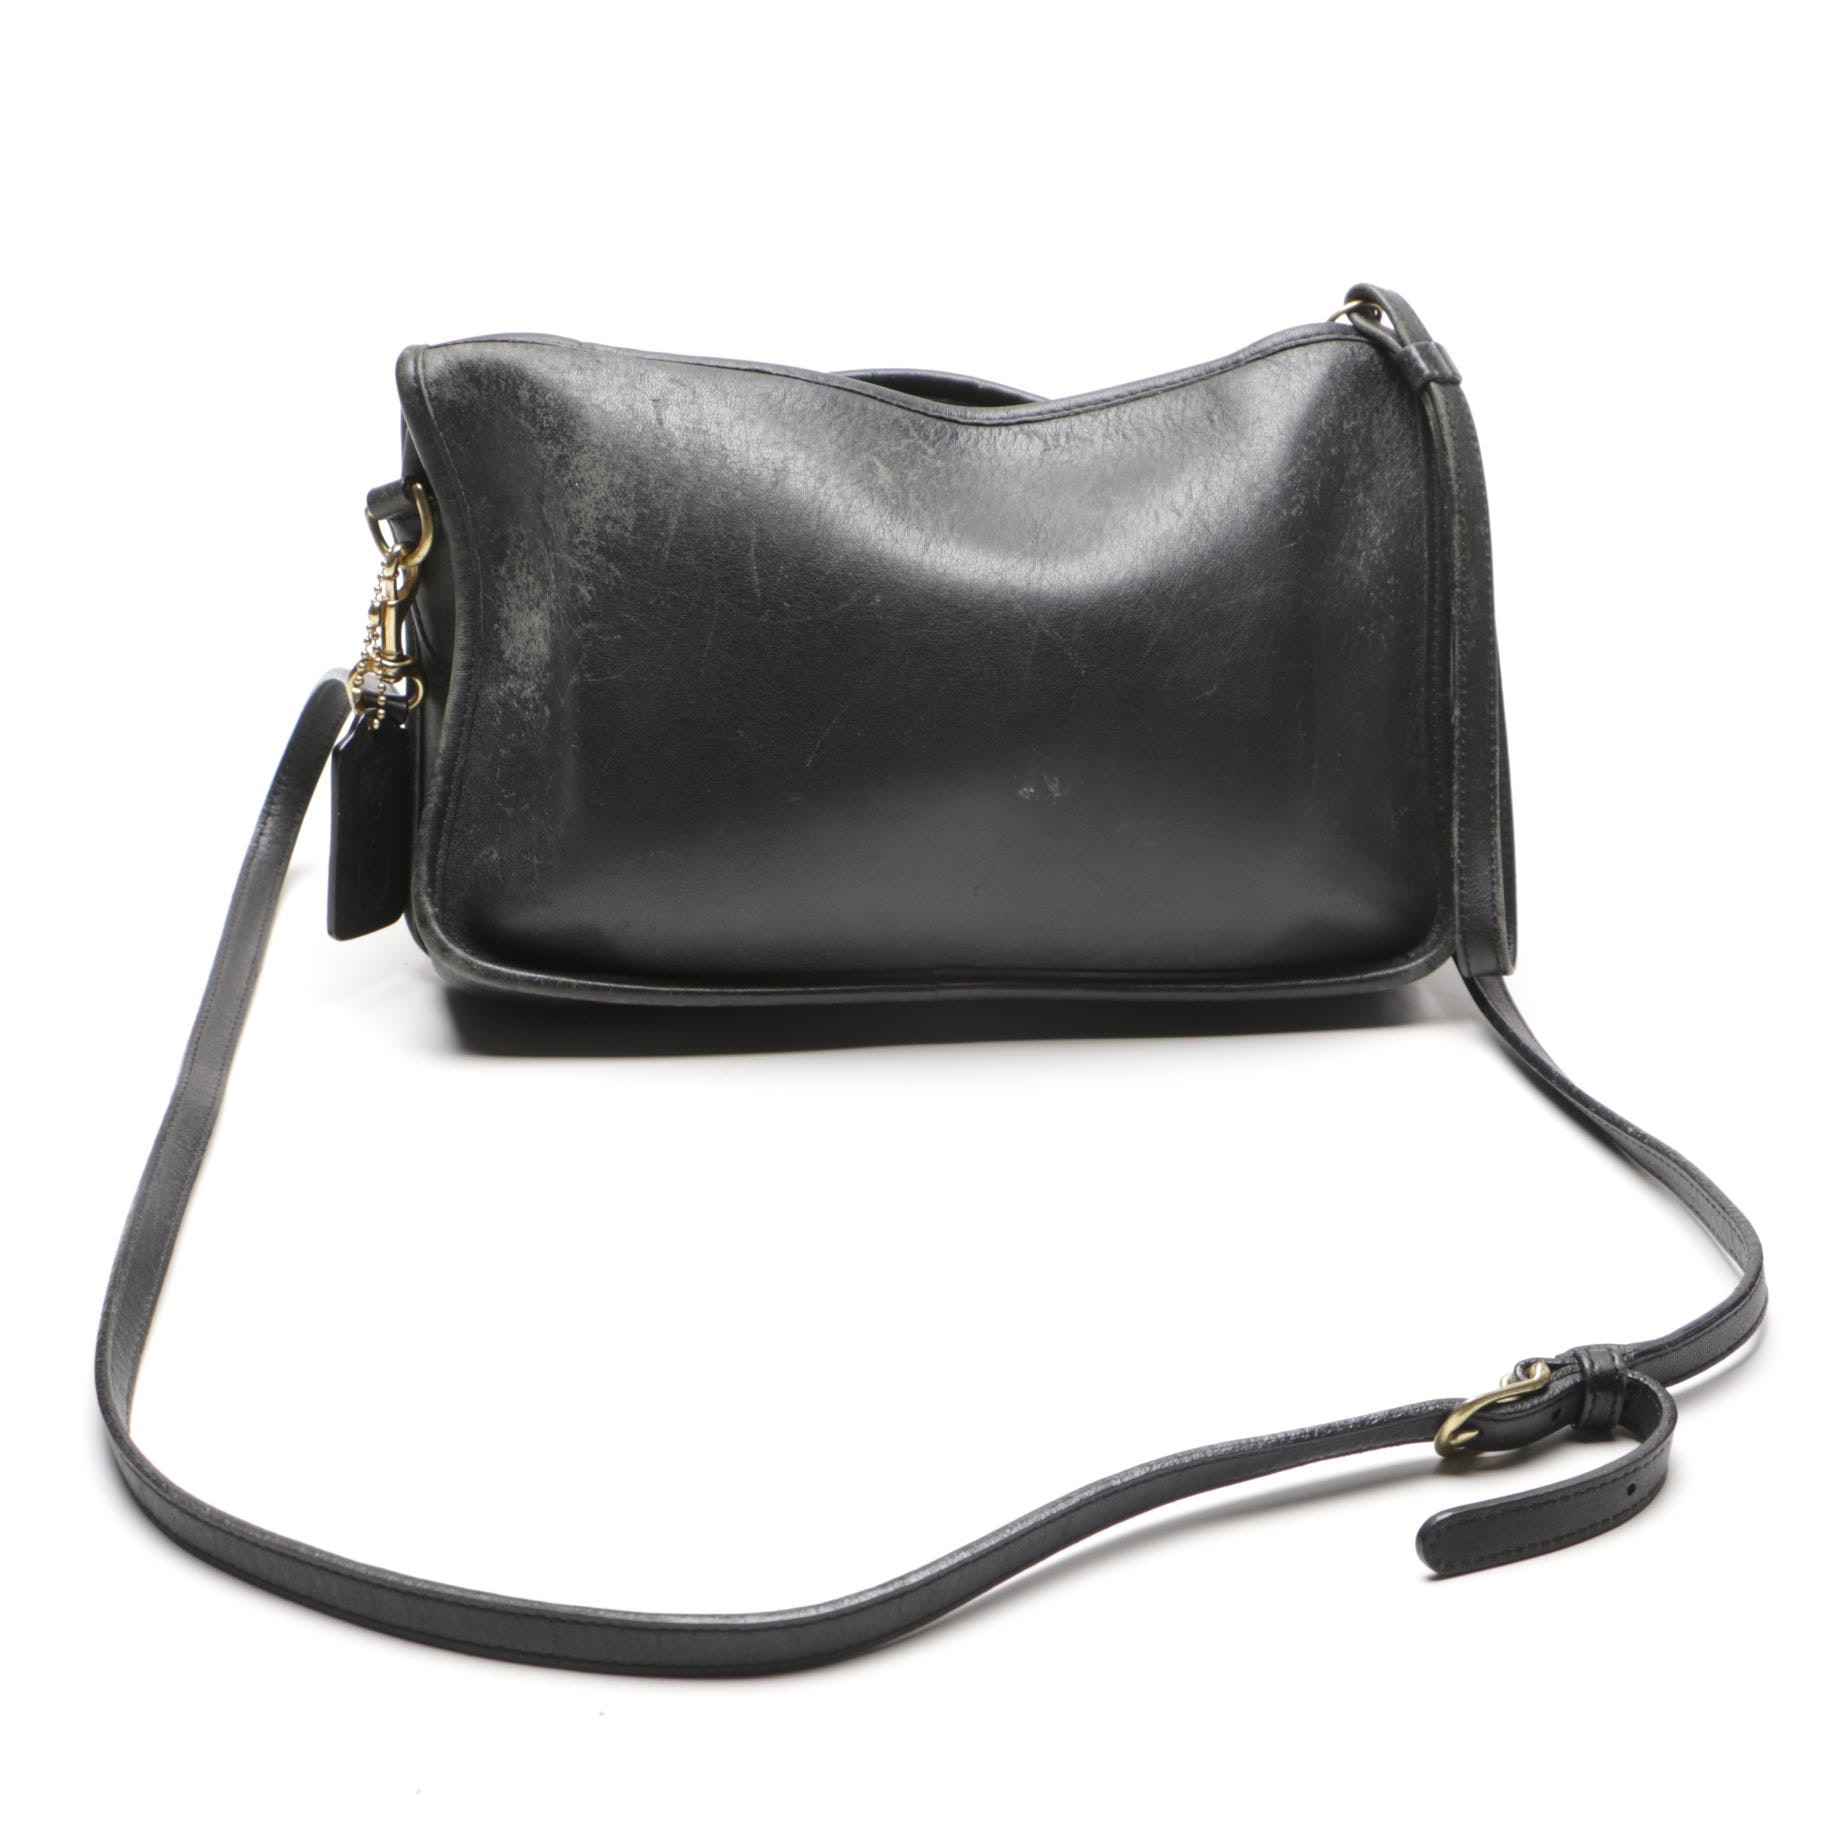 Black Leather Coach Bag and Burgundy Wallet